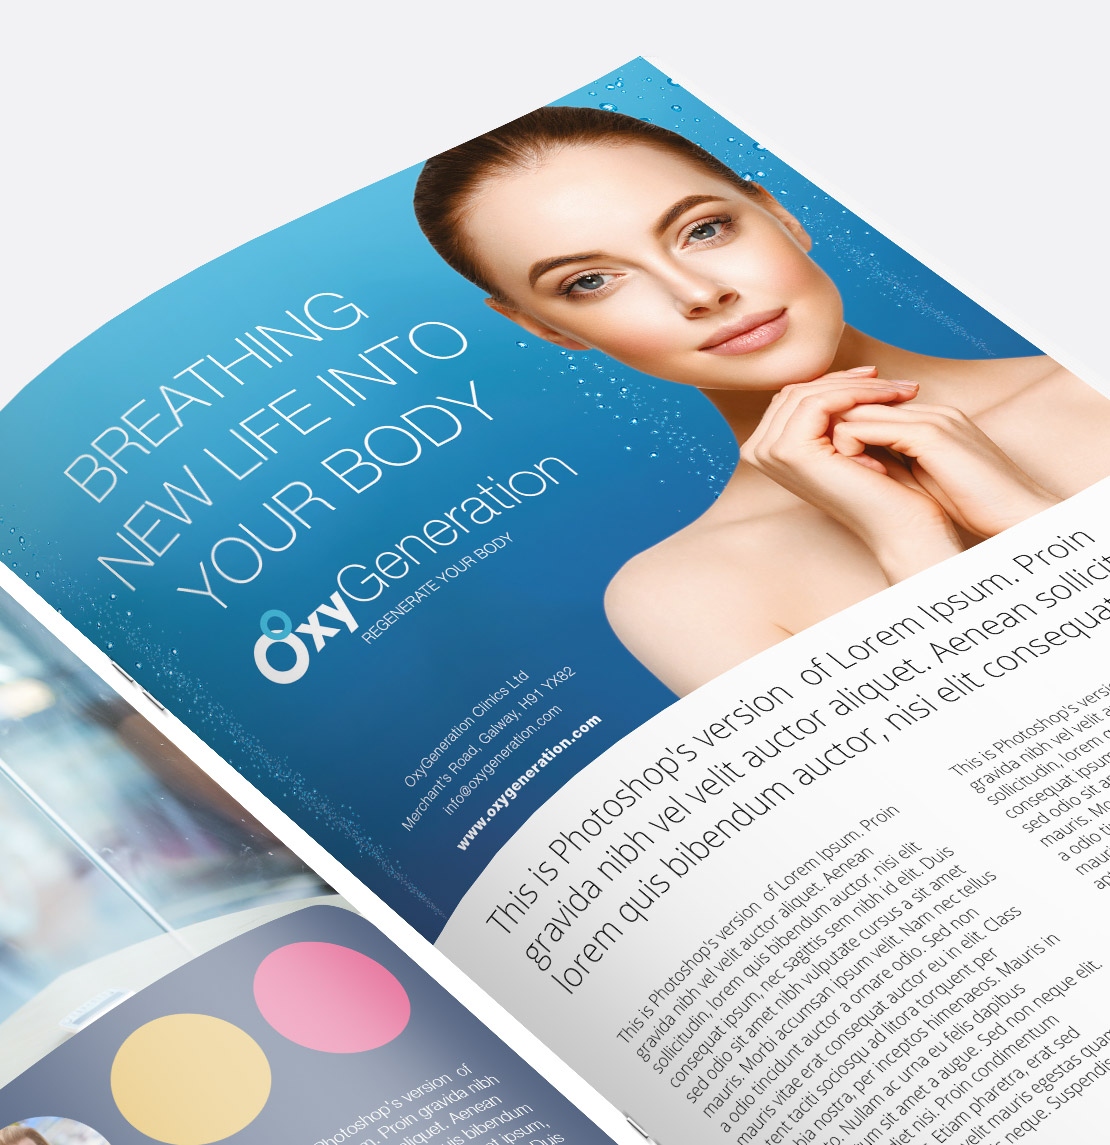 OxyGeneration Magazine Ad